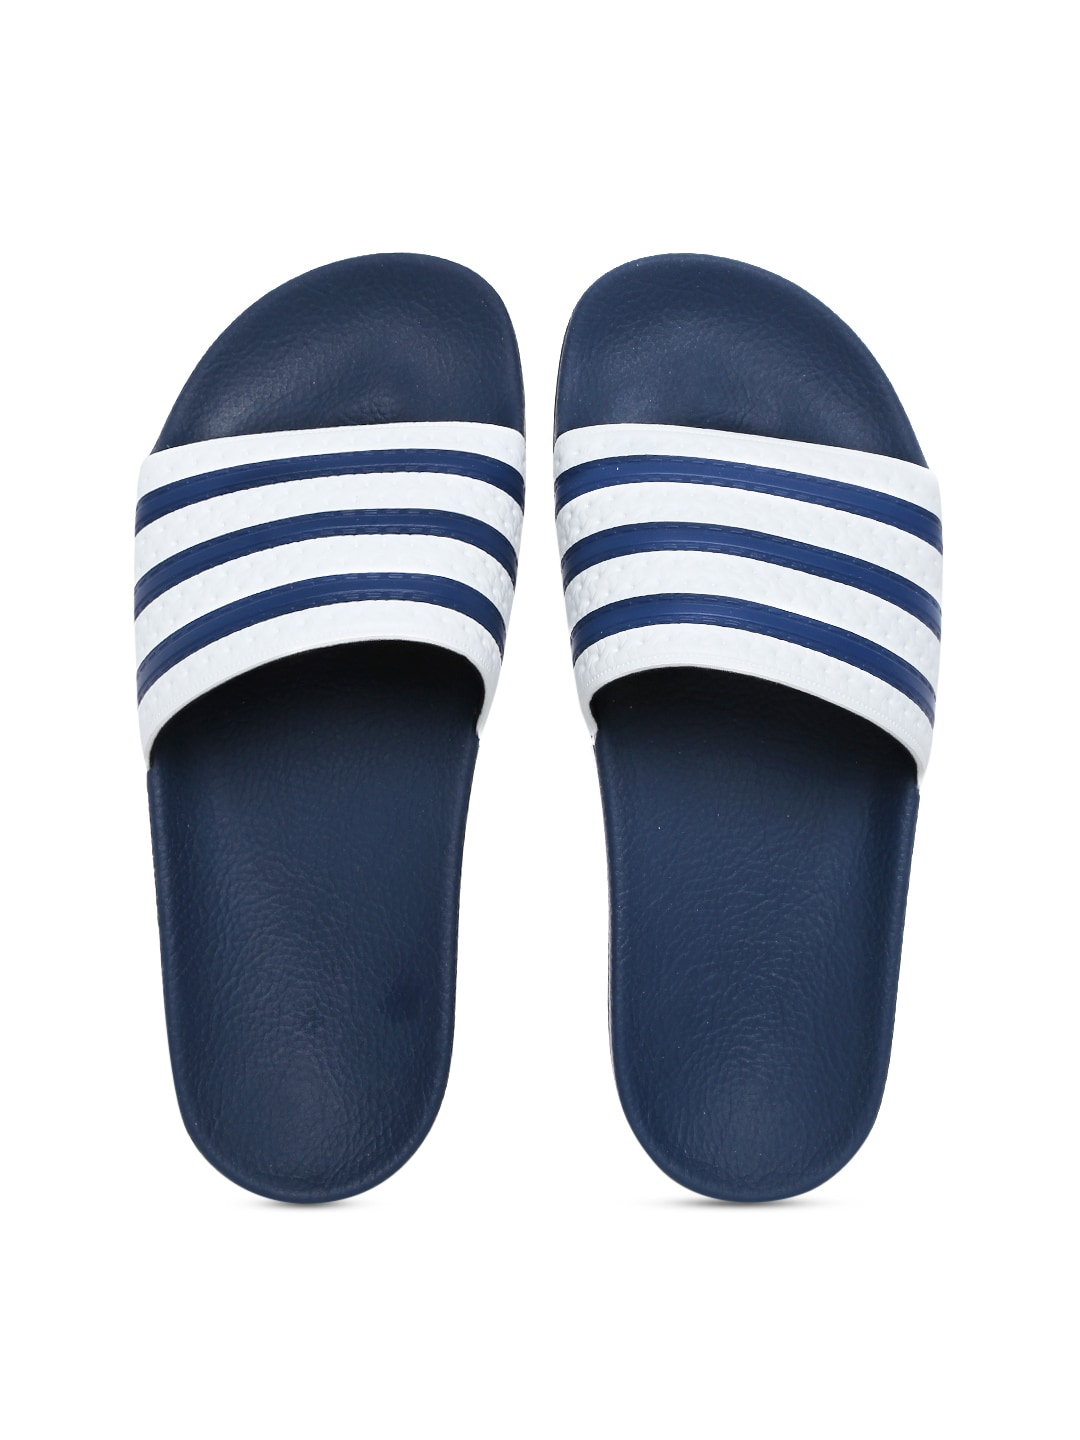 3526380d737c4 Adidas Slippers - Buy Adidas Slipper   Flip Flops Online India